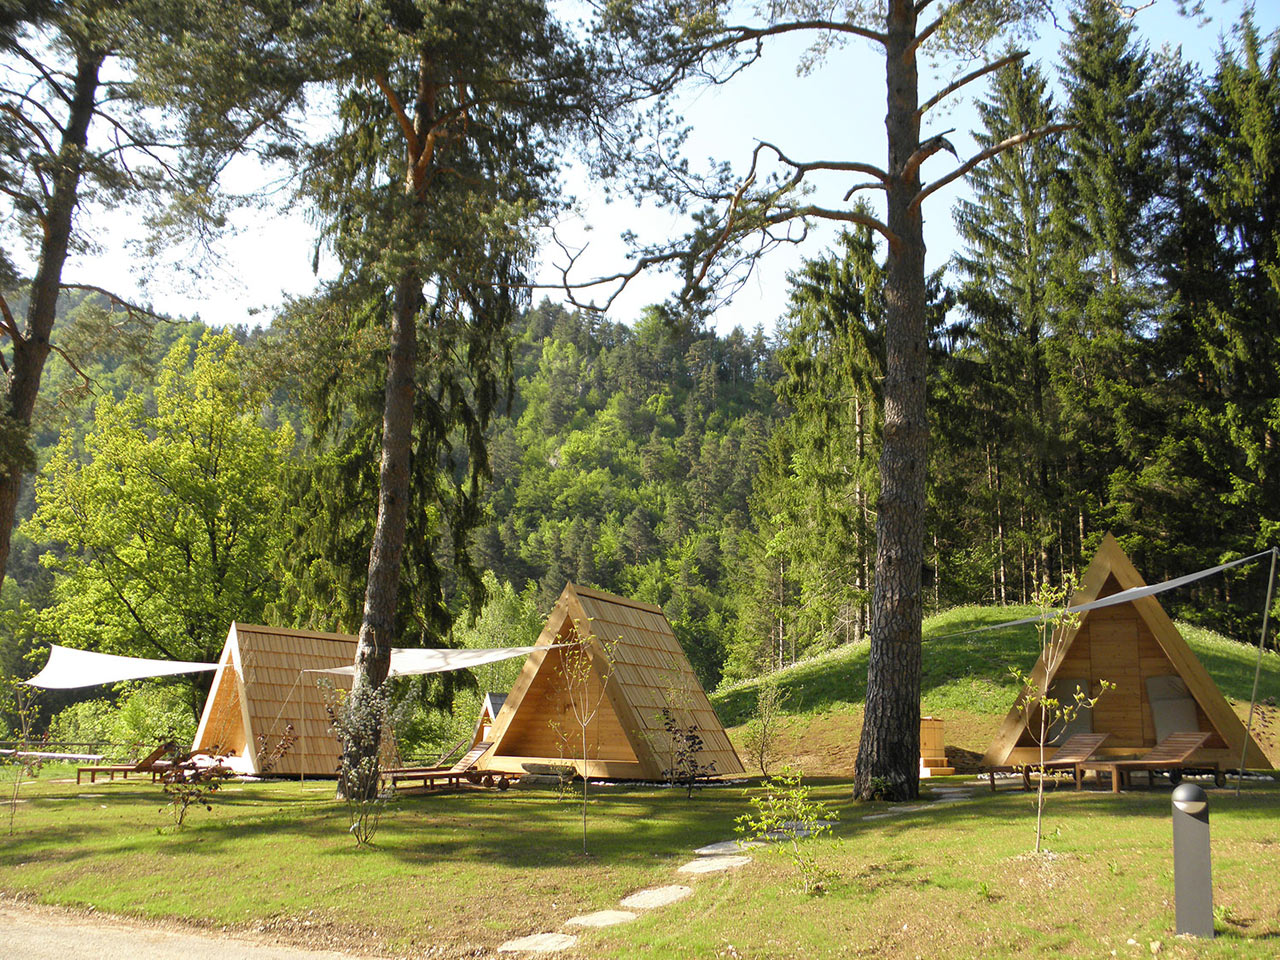 Lushna Villa: Tiny Shelters for Glamping